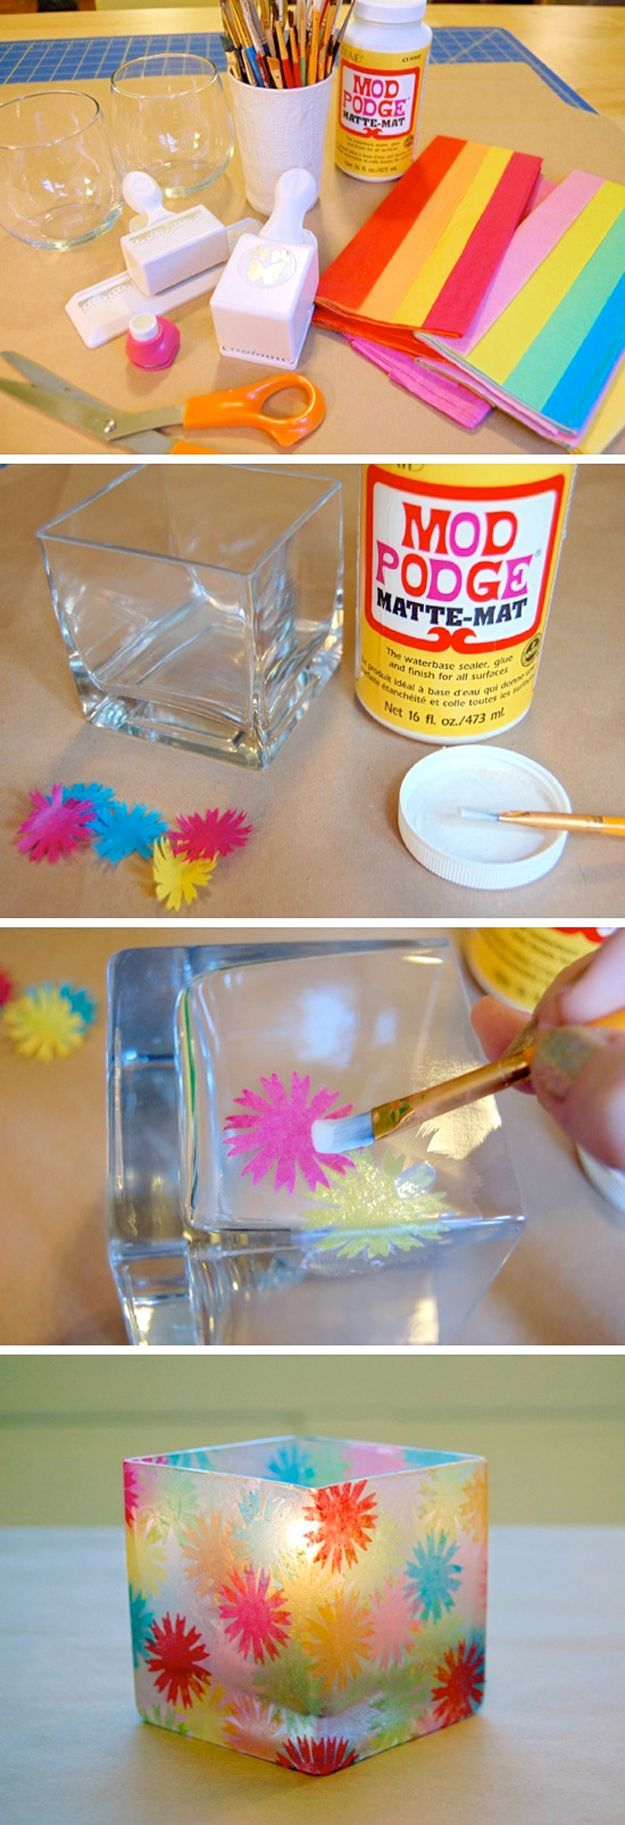 Stained Glass Candle Holder | Cute and Simple DIY Room Decor for Renter by DIY Ready at http://diyready.com/diy-room-decor-ideas-for-renters/: